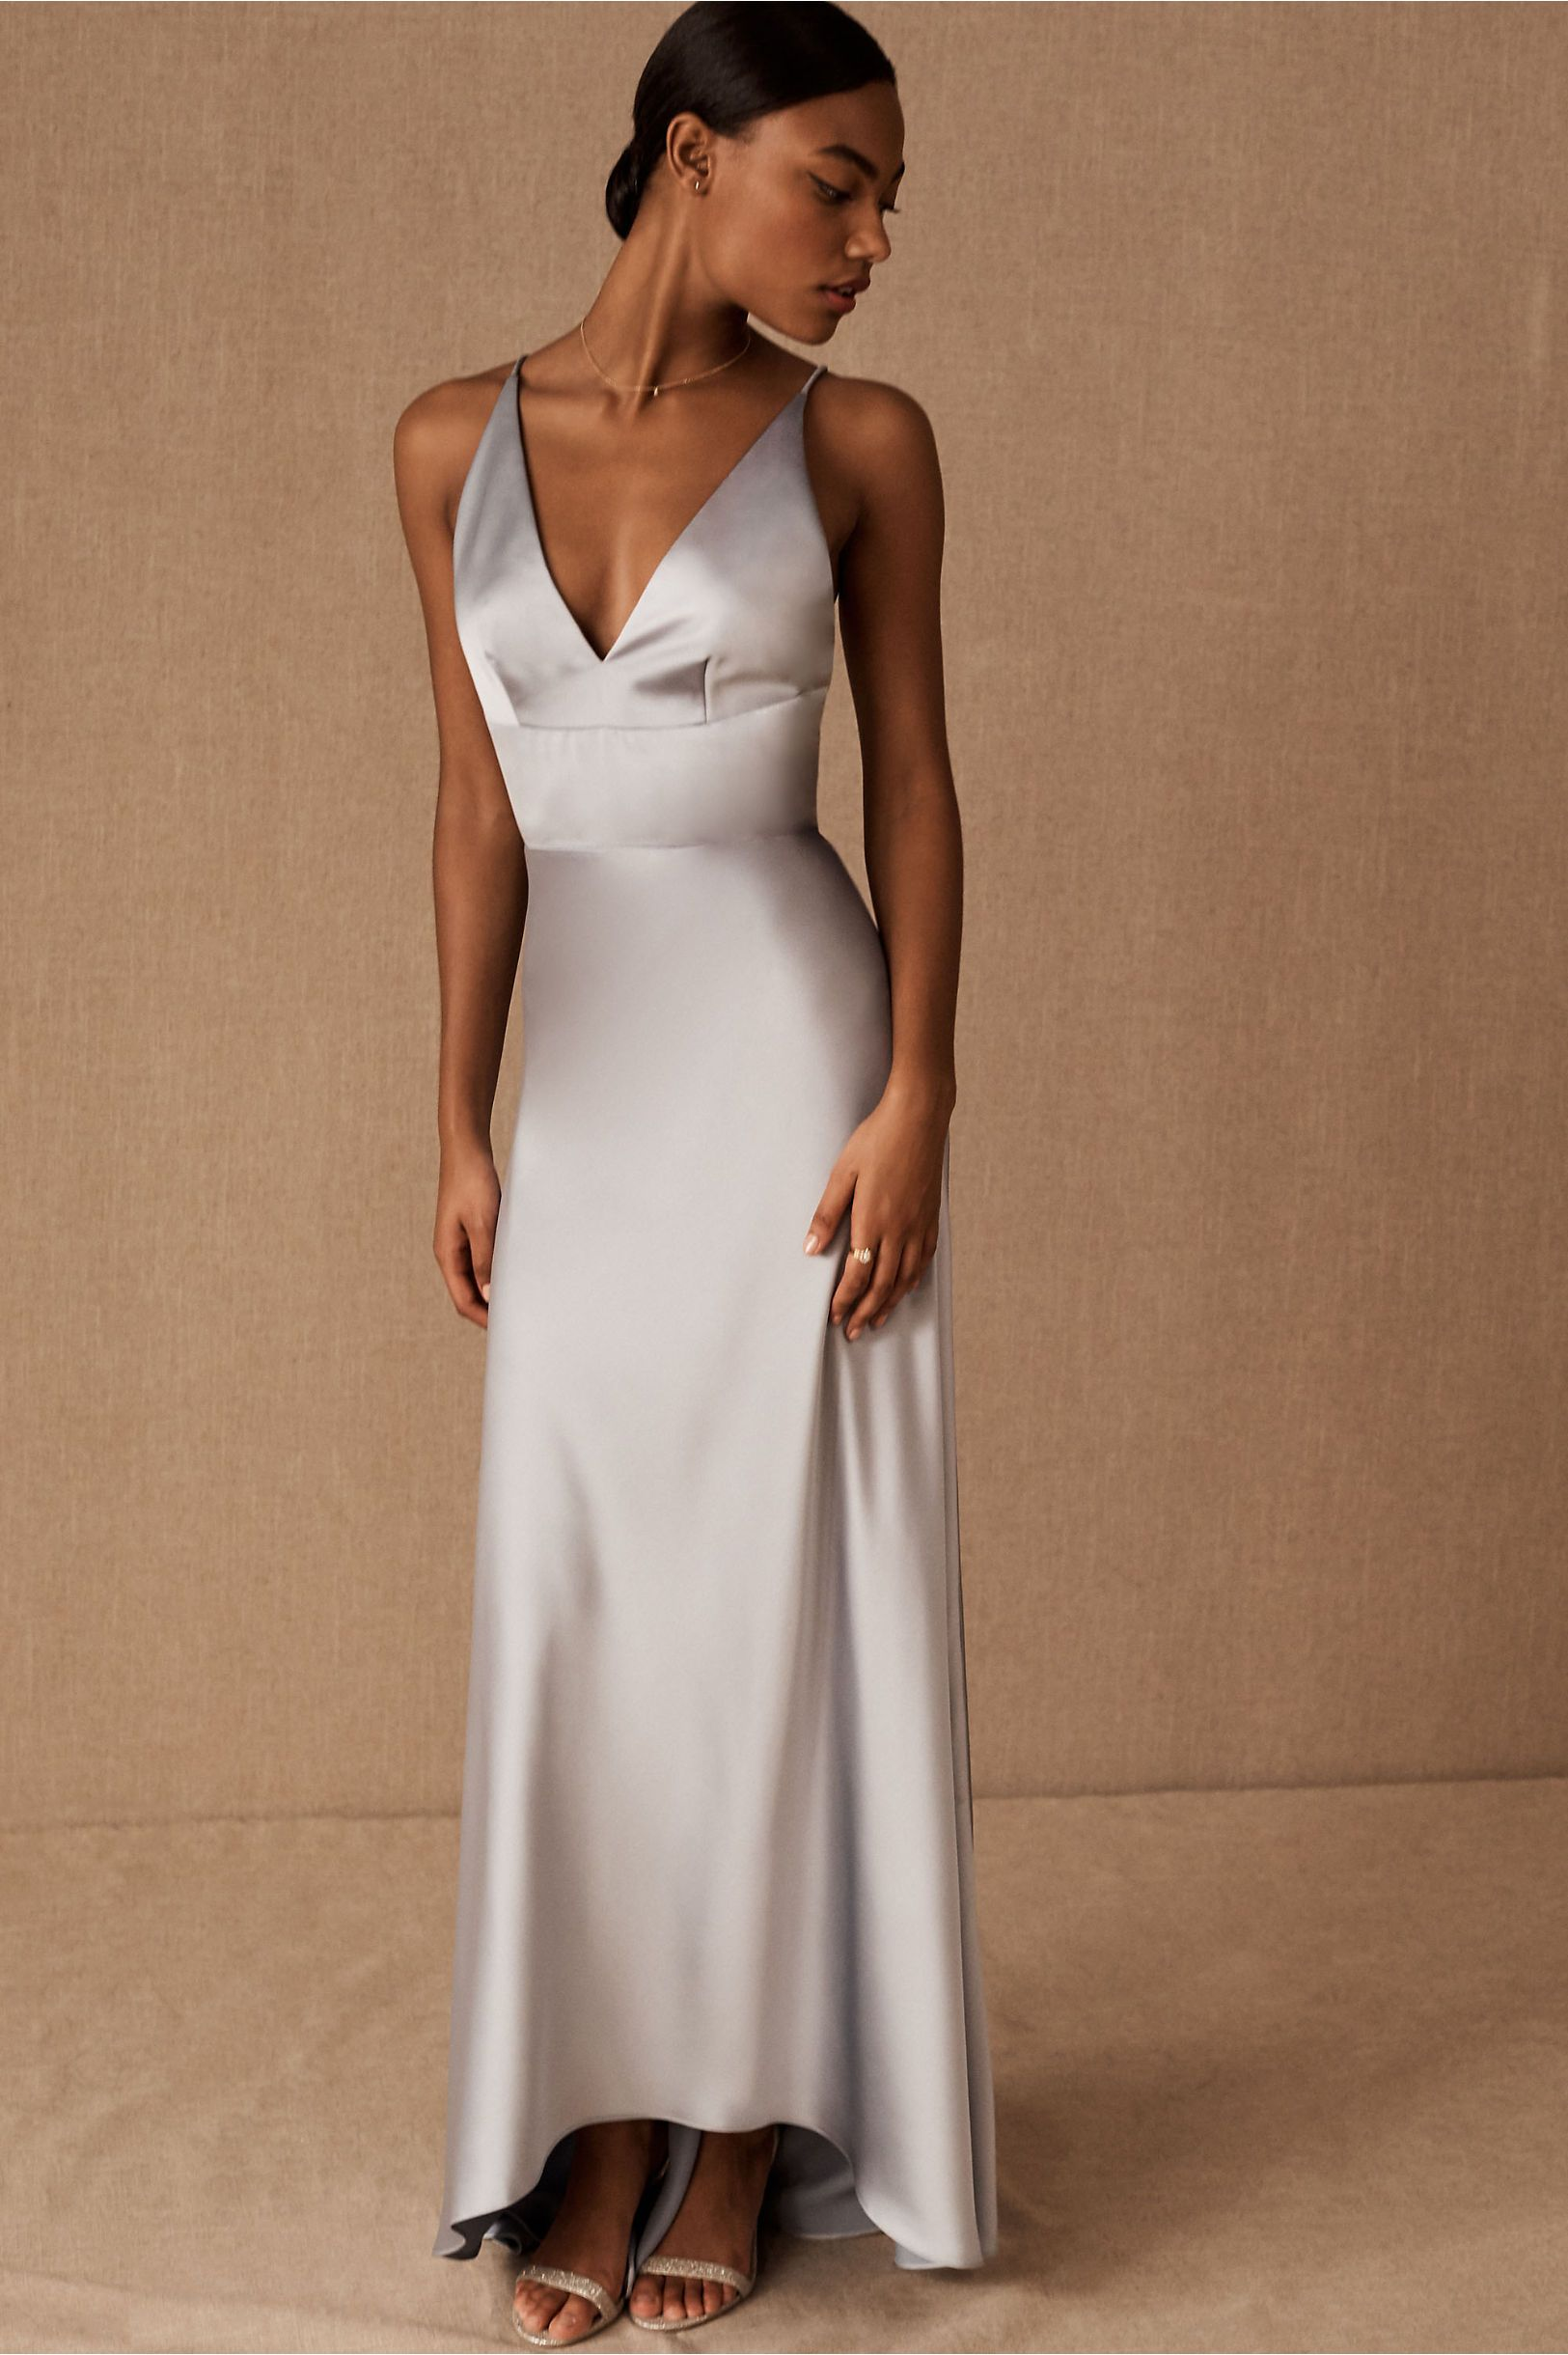 Monique Lhuillier Bridesmaids Maribelle Dress In Dove by Monique Lhuillier Bridesmaids - Dove - Size: 14